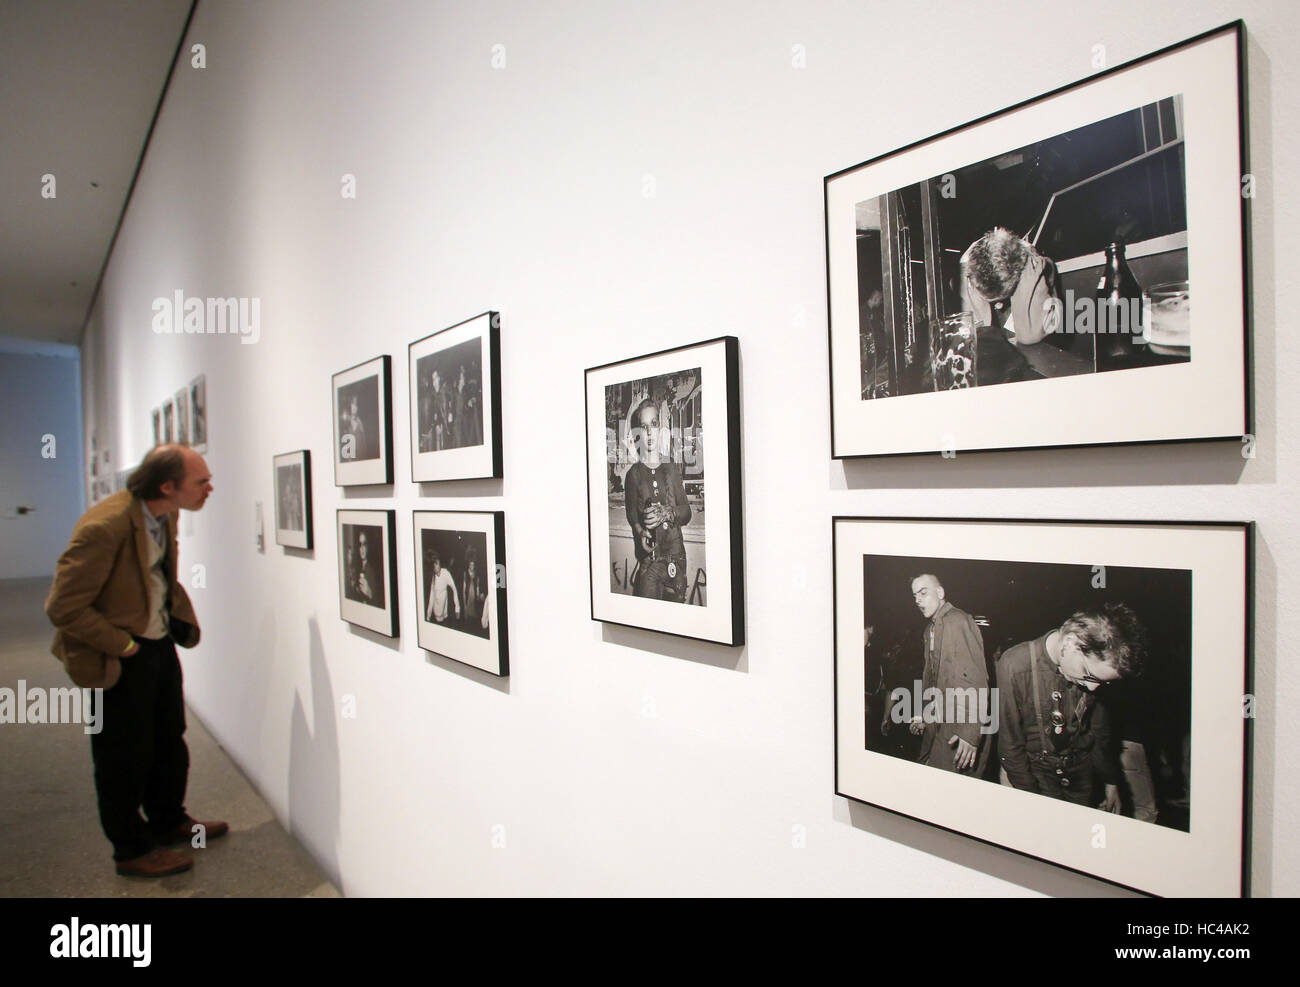 Essen, Germany. 8th Dec, 2016. A visitor looks at photos by Uschi Blume at the Folkwang Museum in Essen, Germany, - Stock Image